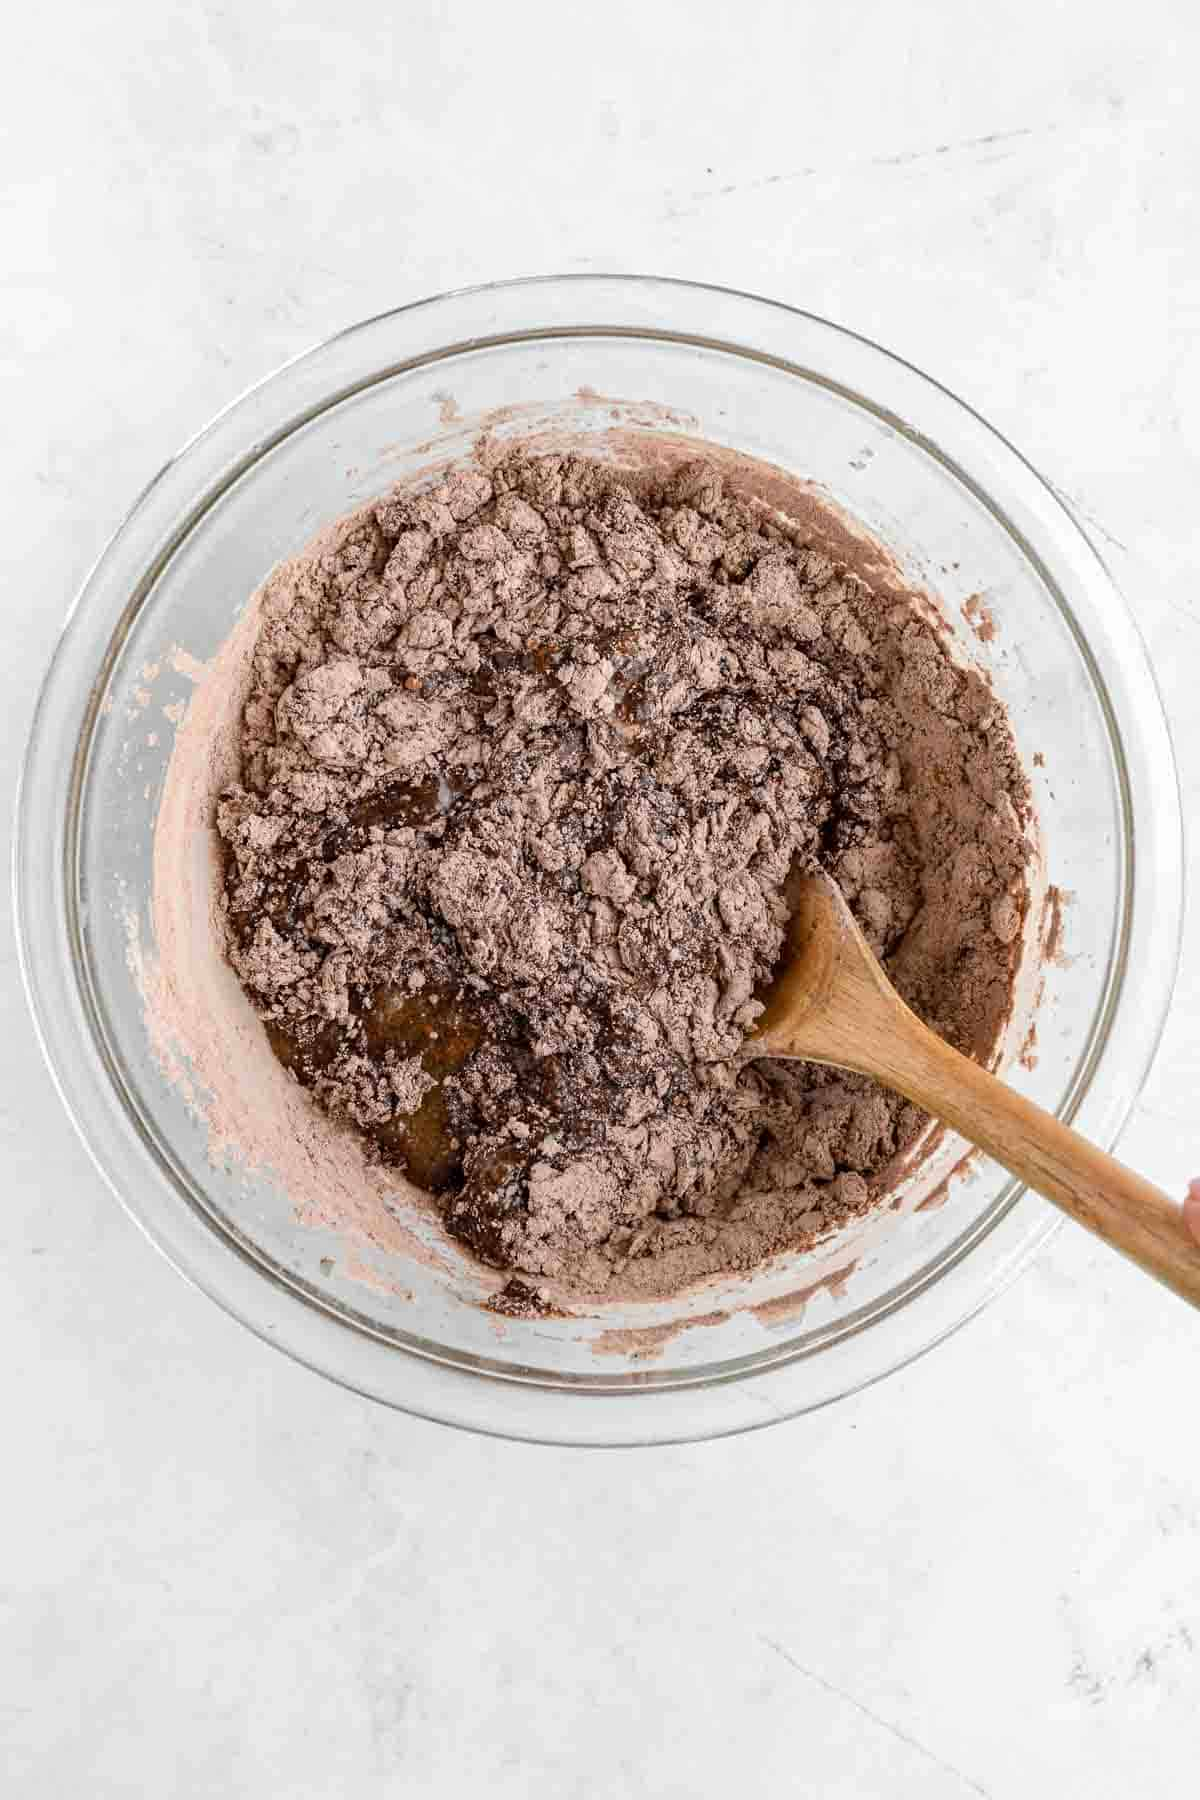 a wooden spoon mixing dry ingredients into wet ingredients for brownie batter